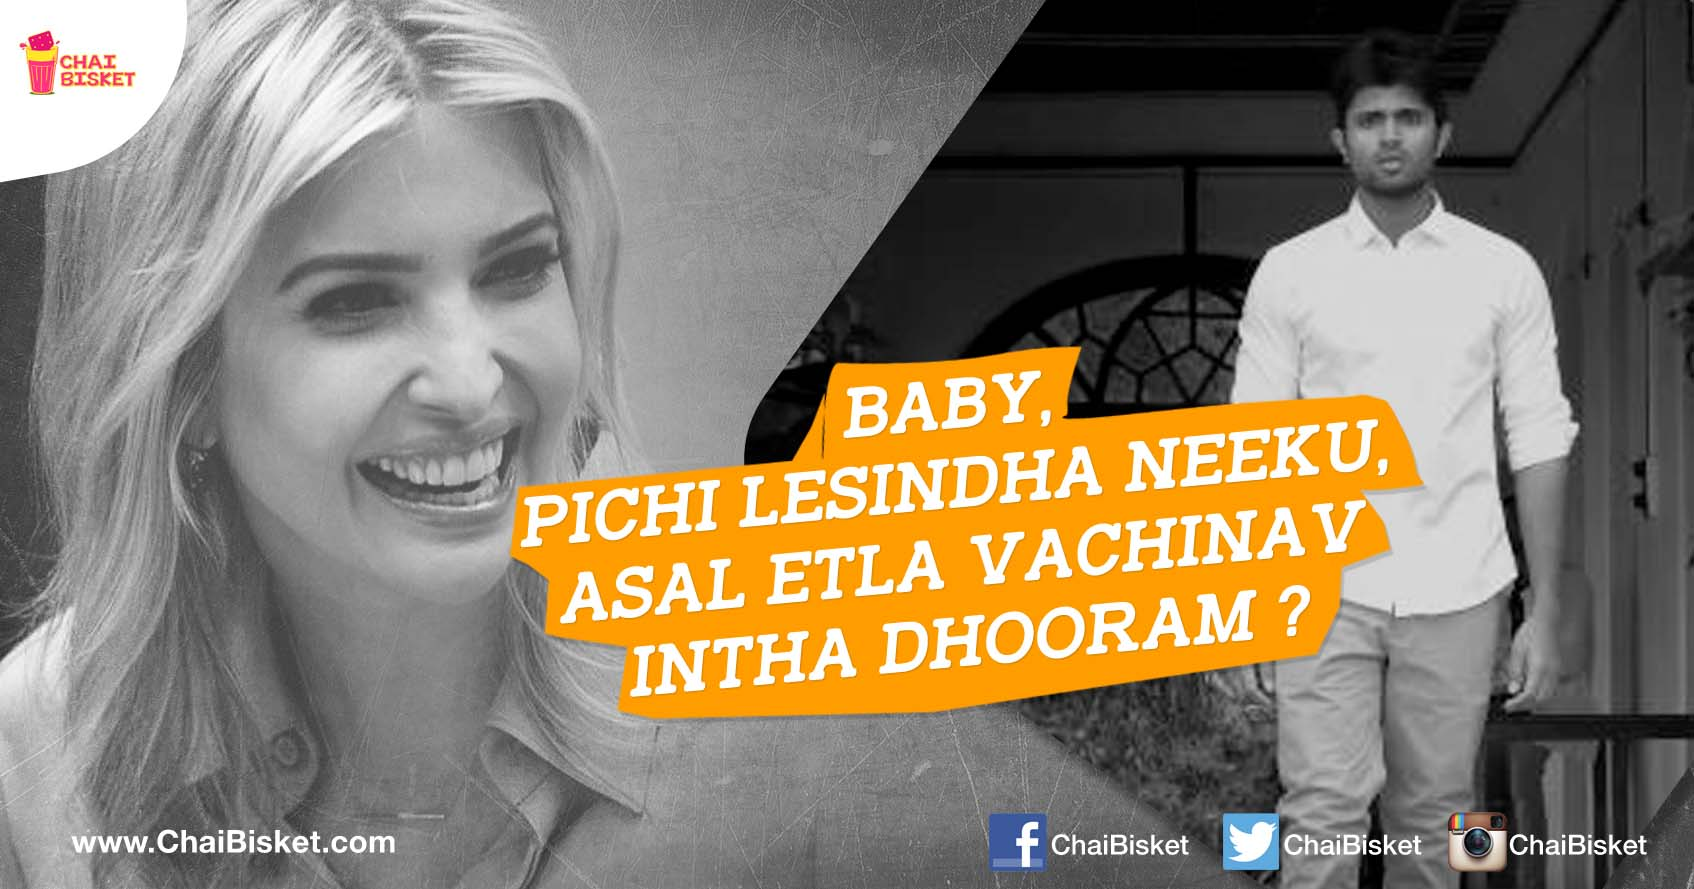 11 Hilarious Questions Our Meme Stars Want To Ask Ivanka Trump During Her  Visit To Hyderabad!